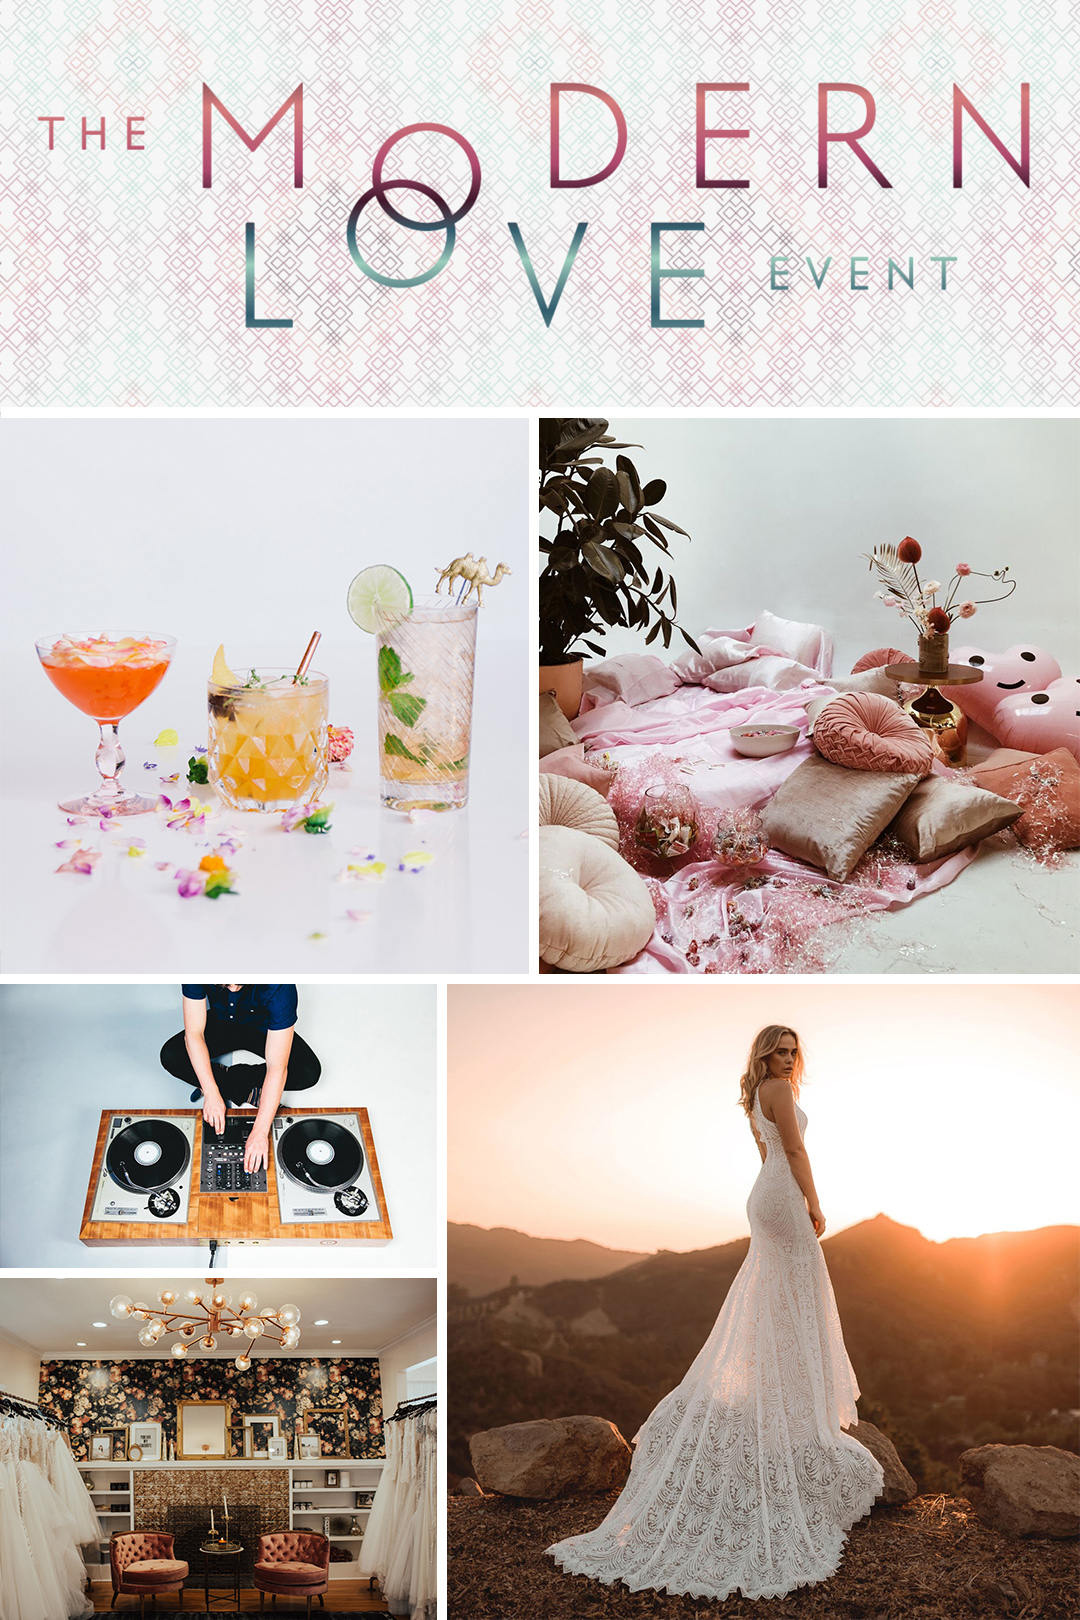 The Modern Love event